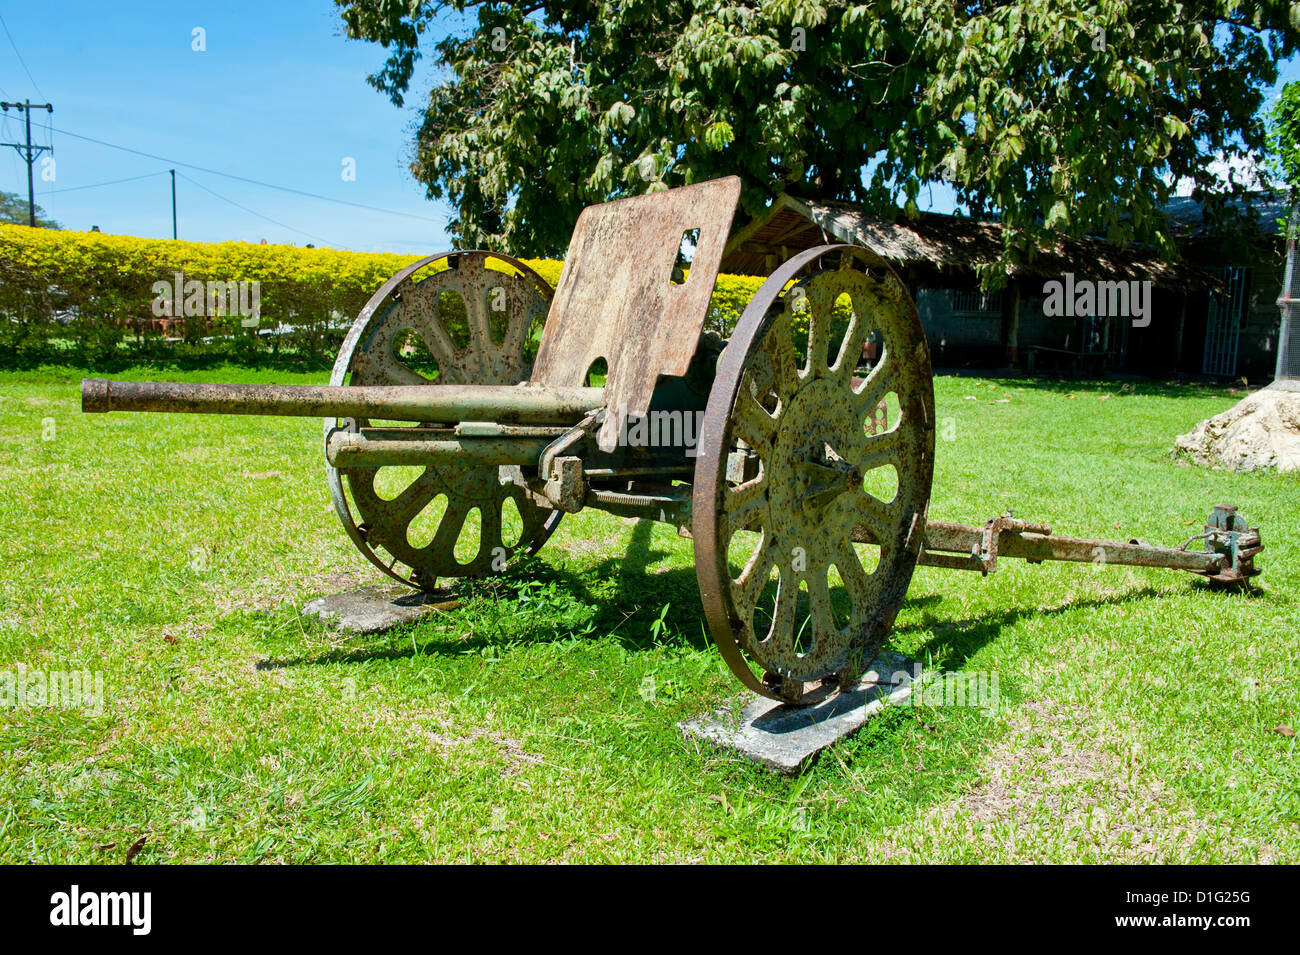 Second World War relic at the Betikama SDA mission, Honiara, capital of the Solomon Islands, Pacific - Stock Image